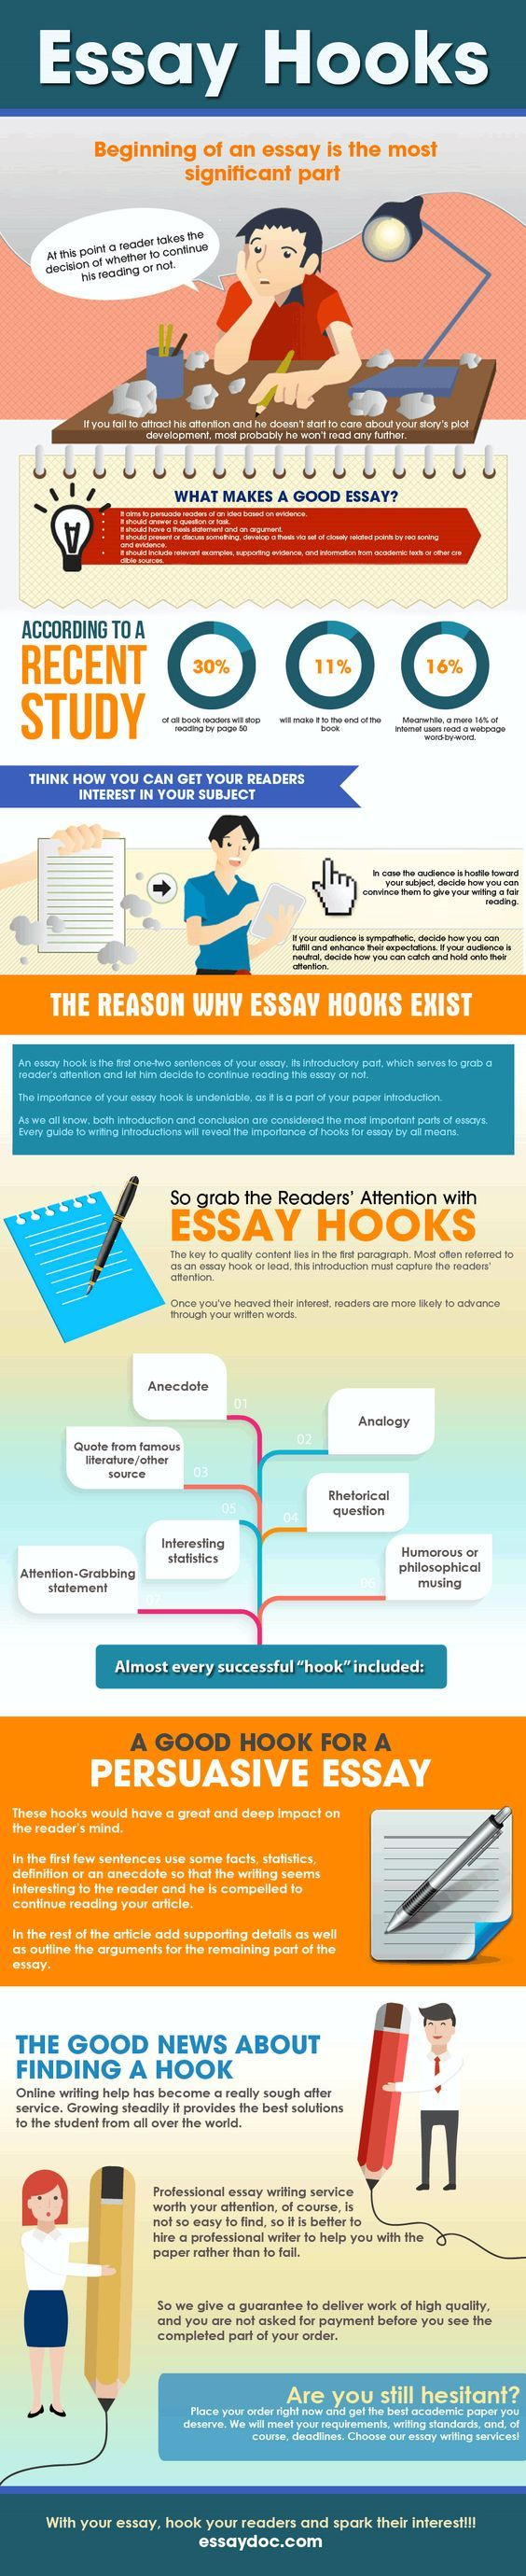 best essay writing ideas essay writing tips  best 25 essay writing ideas essay writing tips essay tips and university tips